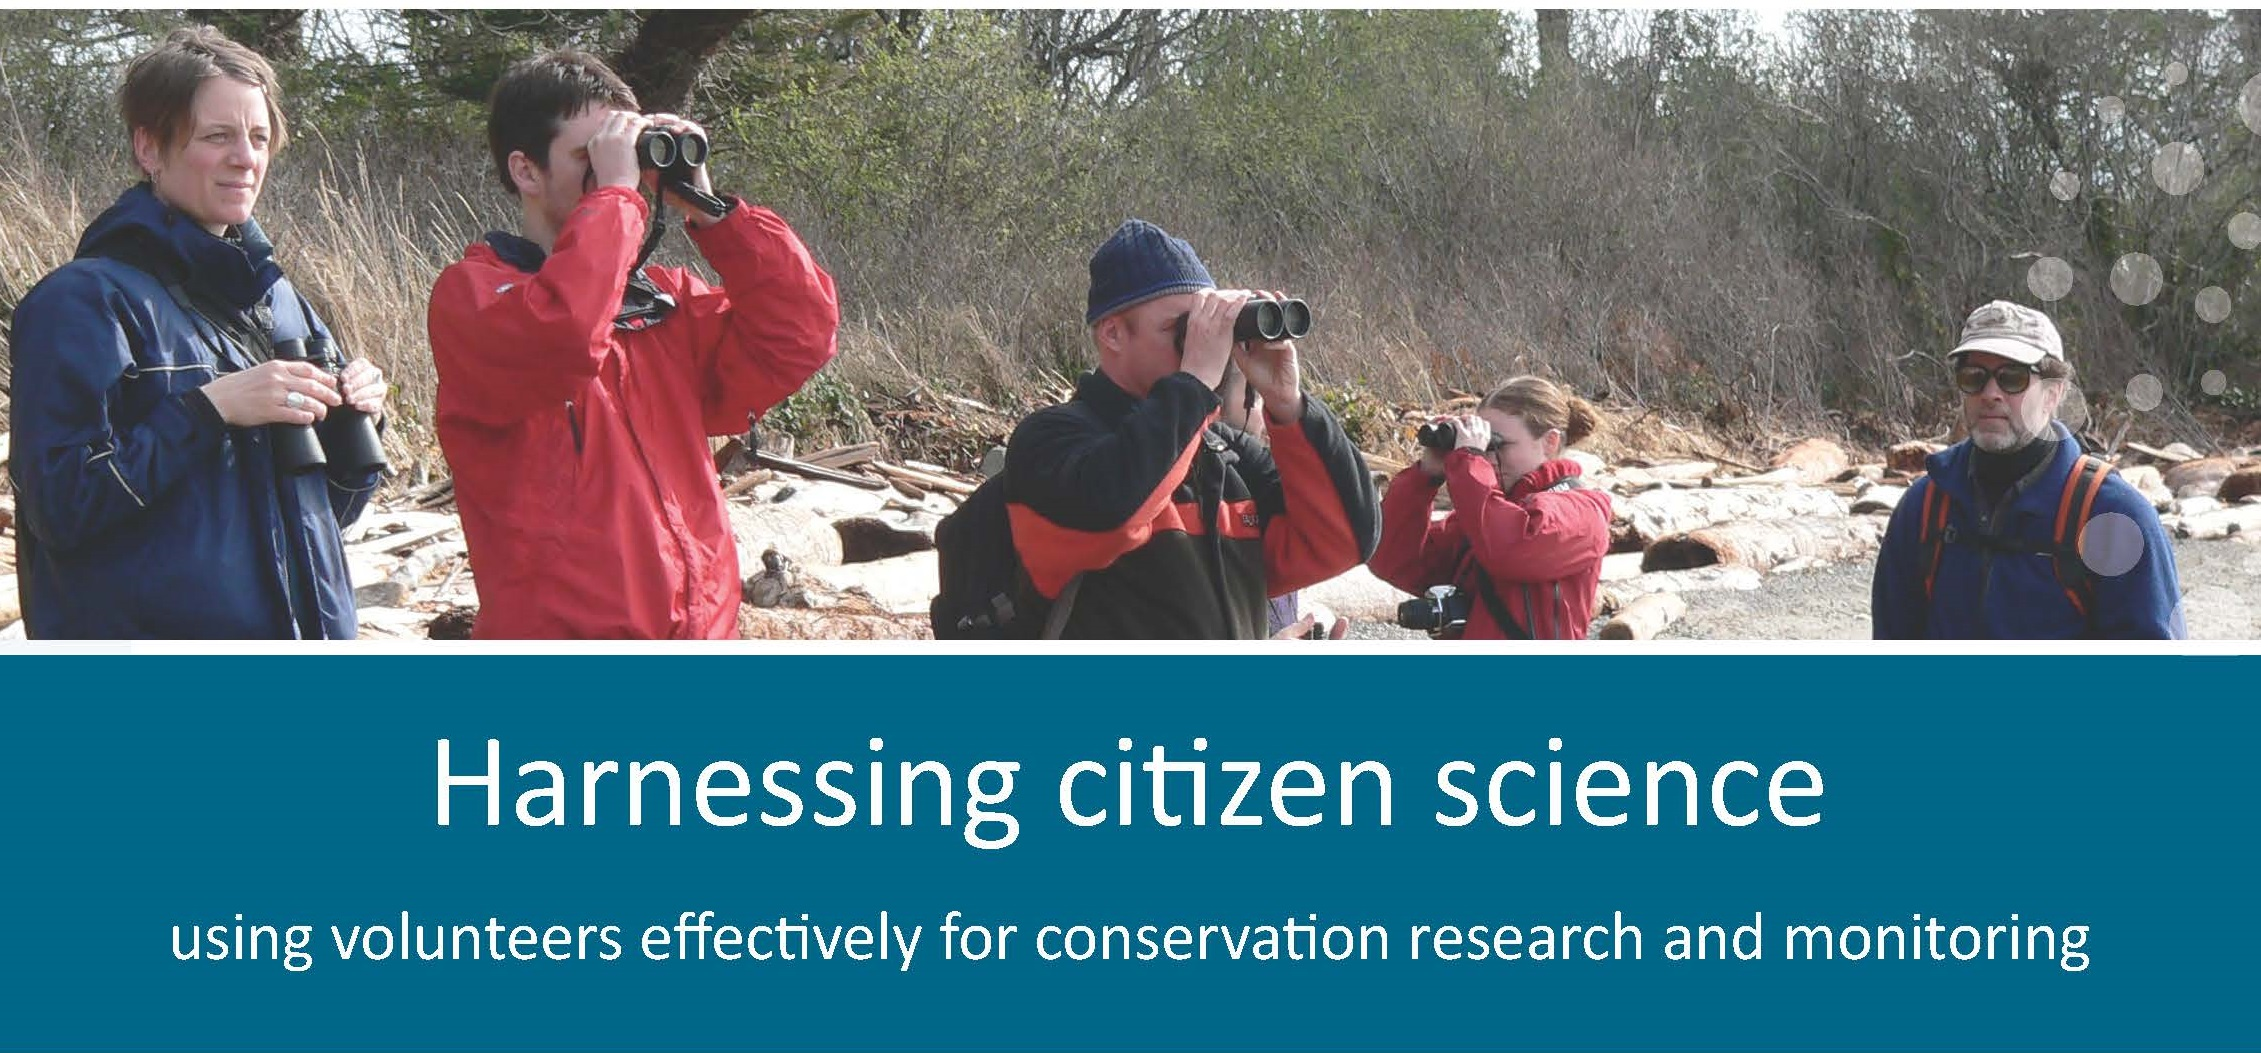 20151111 CEED DBrief 1 Citizen Science Page 1